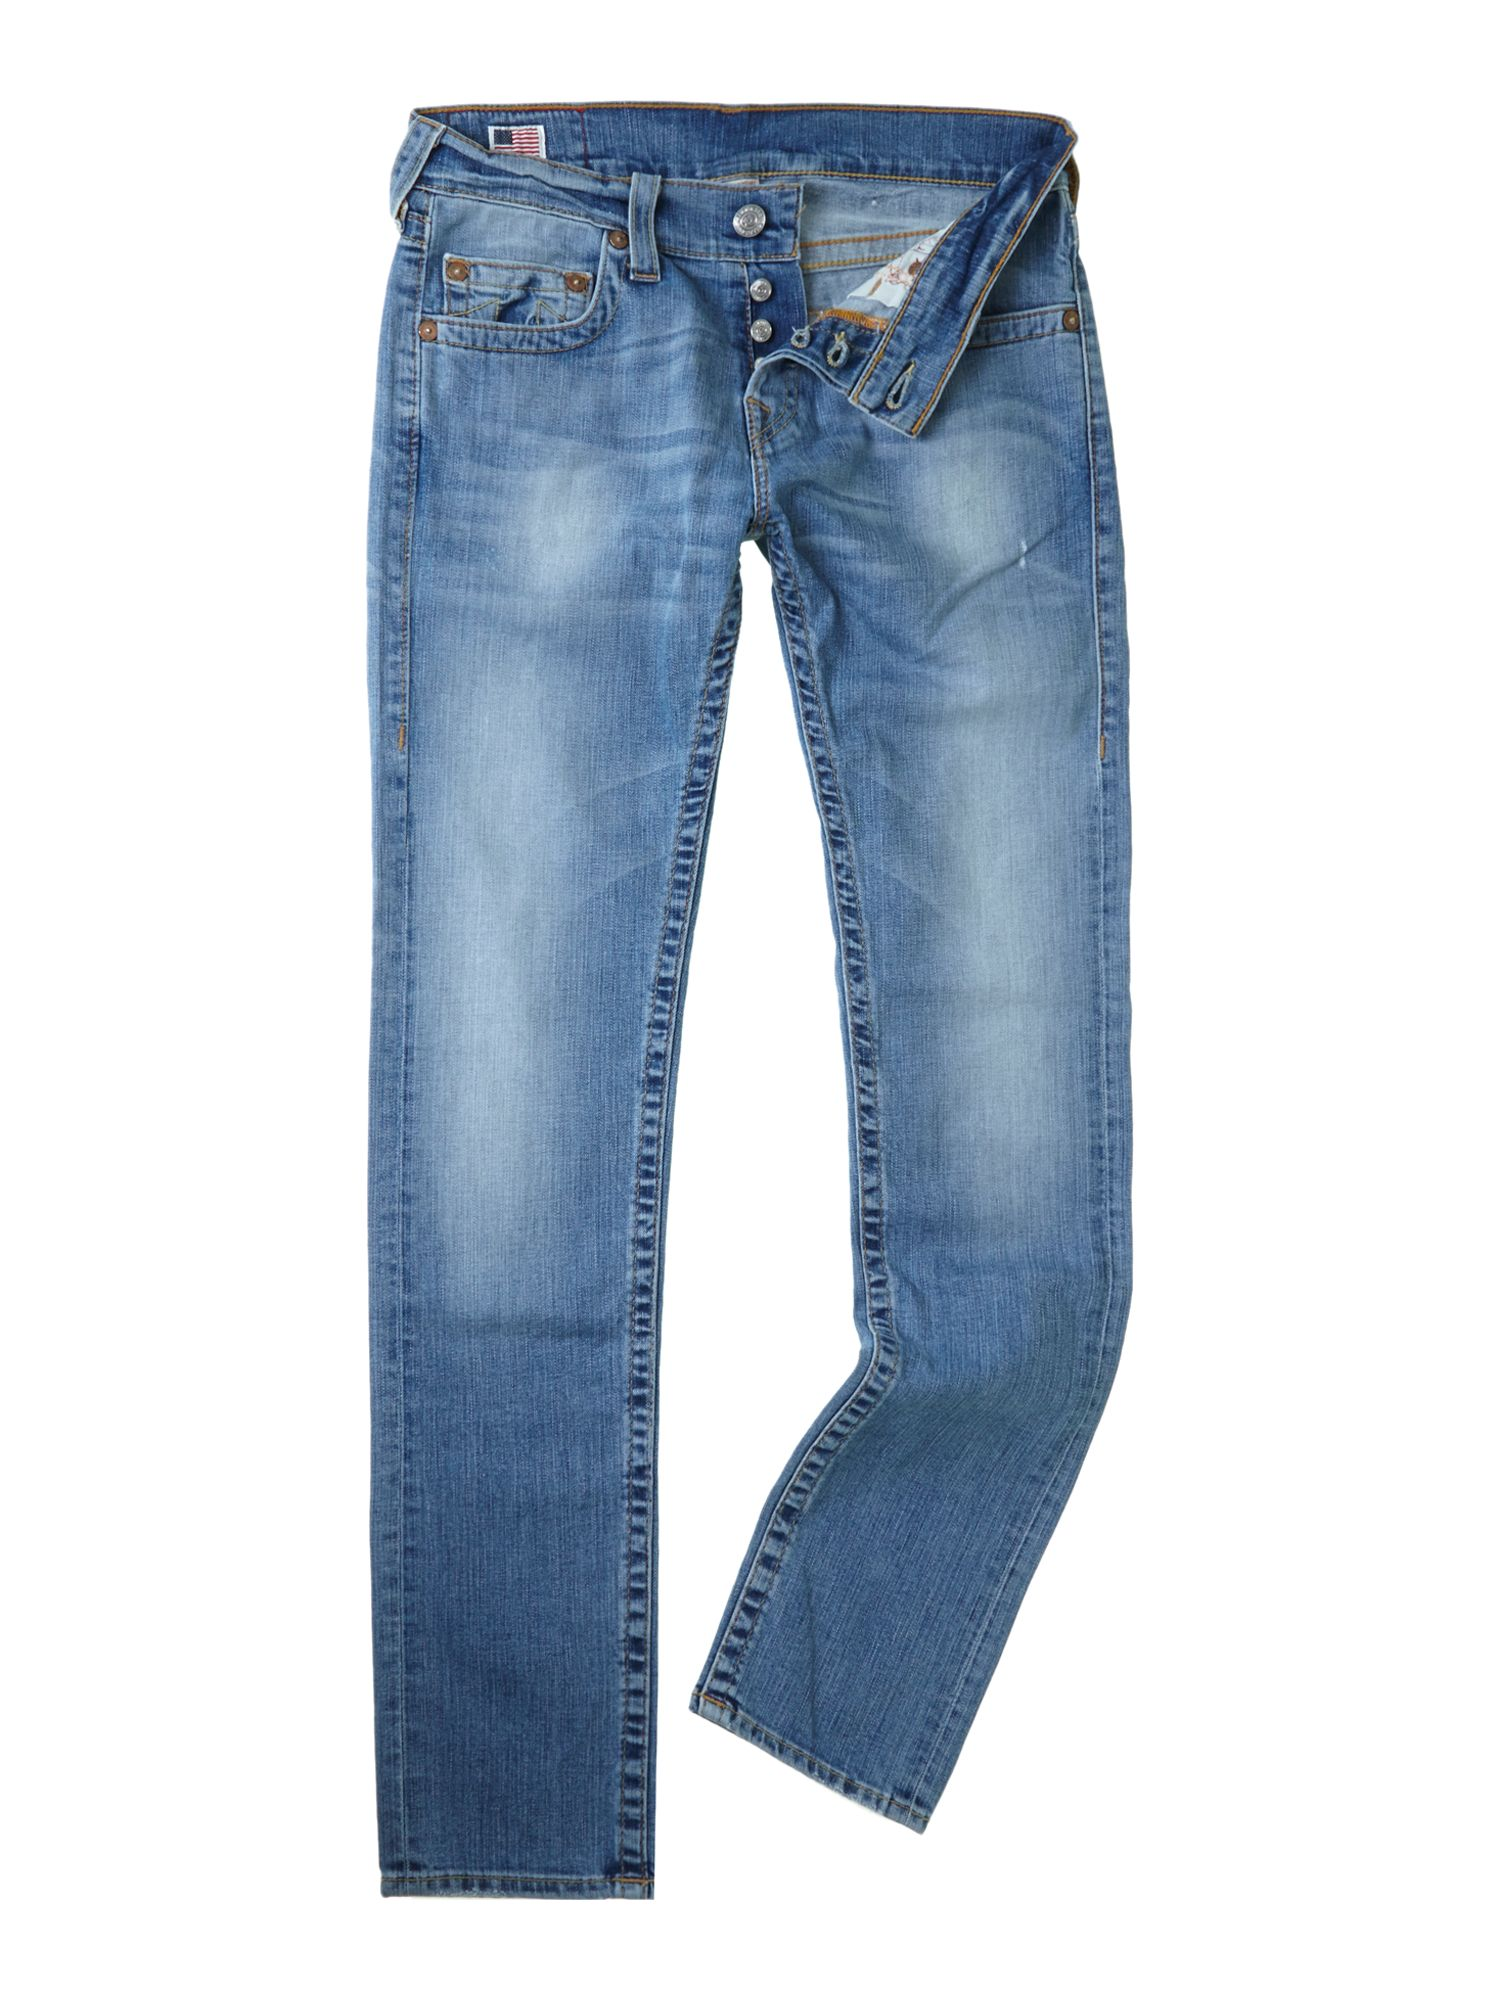 Rocco light wash jeans